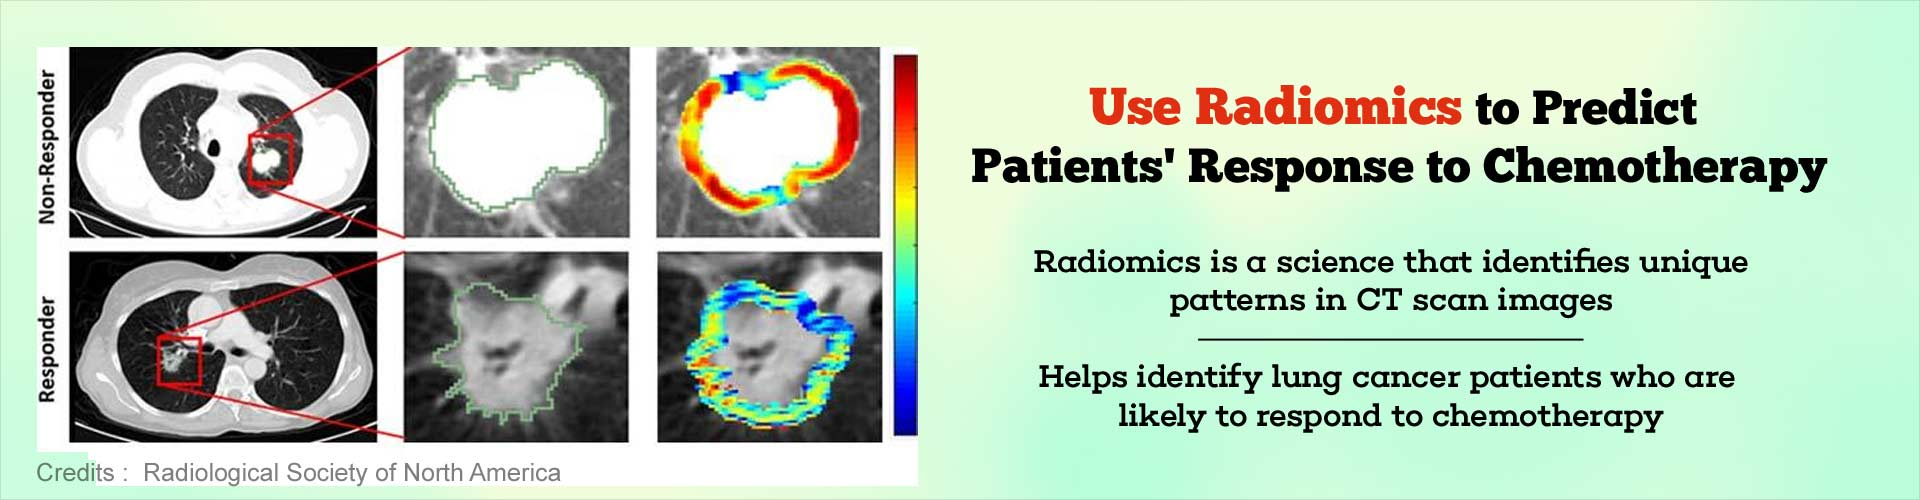 Use Radiomics to predict patients' response to chemotherapy. Radiomics is a science that identifies unique patterns in CT scan images. Helps identify lung cancer patients who are likely to respond to chemotherapy.